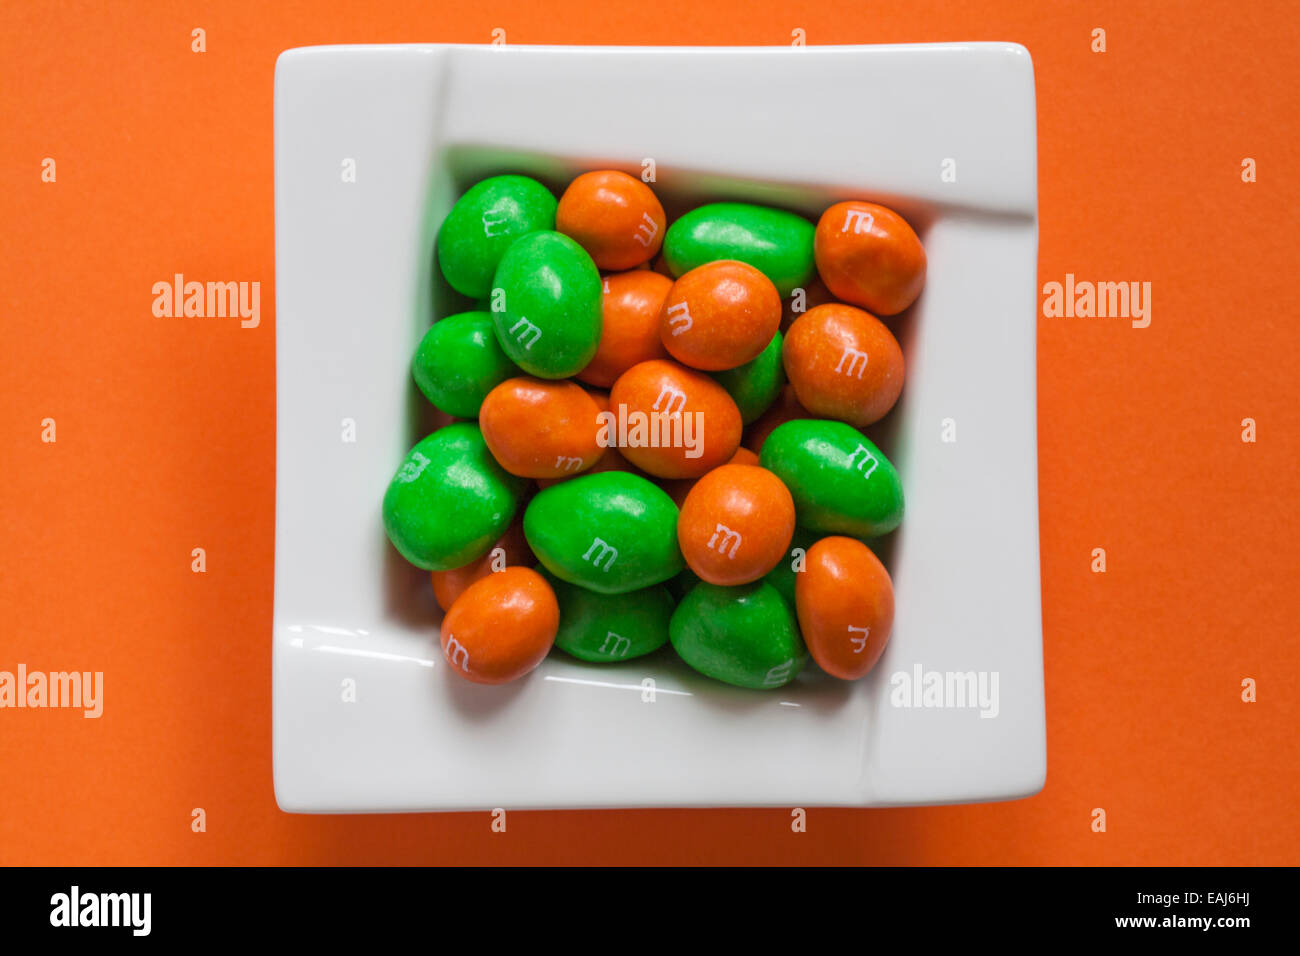 limited edition peanut M&Ms for Halloween in bowl isolated on orange coloured  background - looking down on - Stock Image